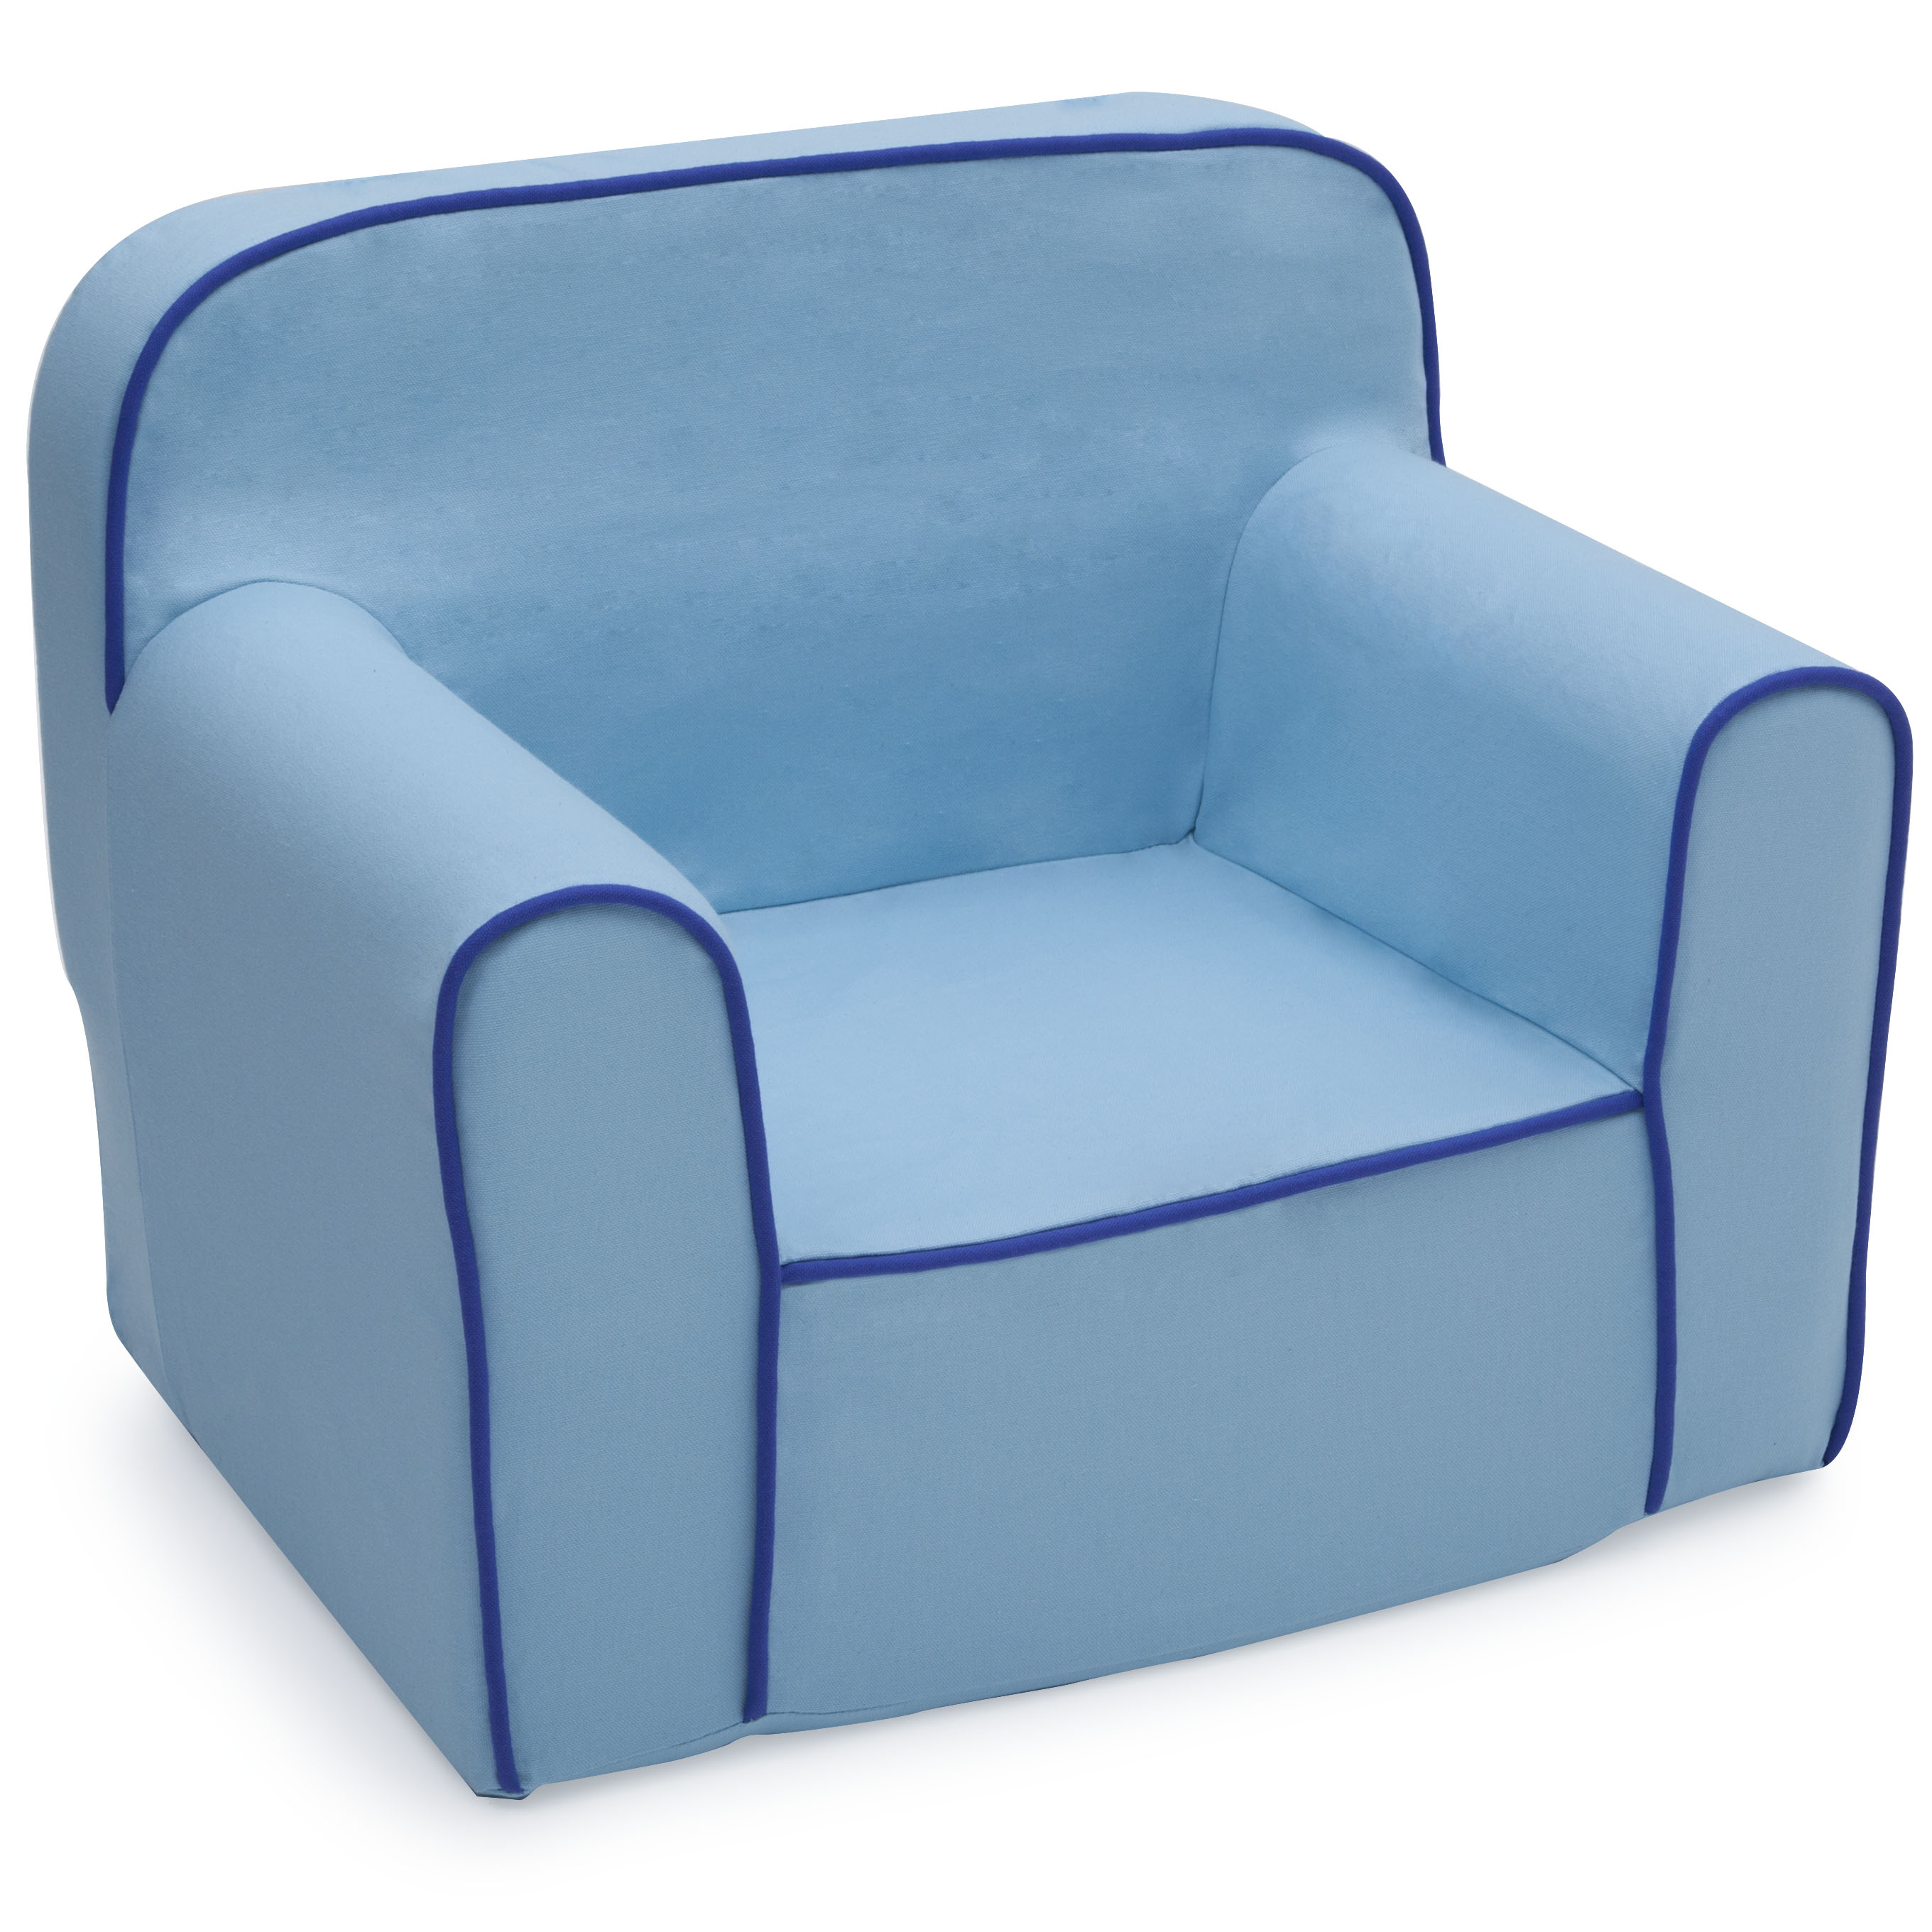 Toddler Foam Chair Delta Children Foam Snuggle Chair Blue